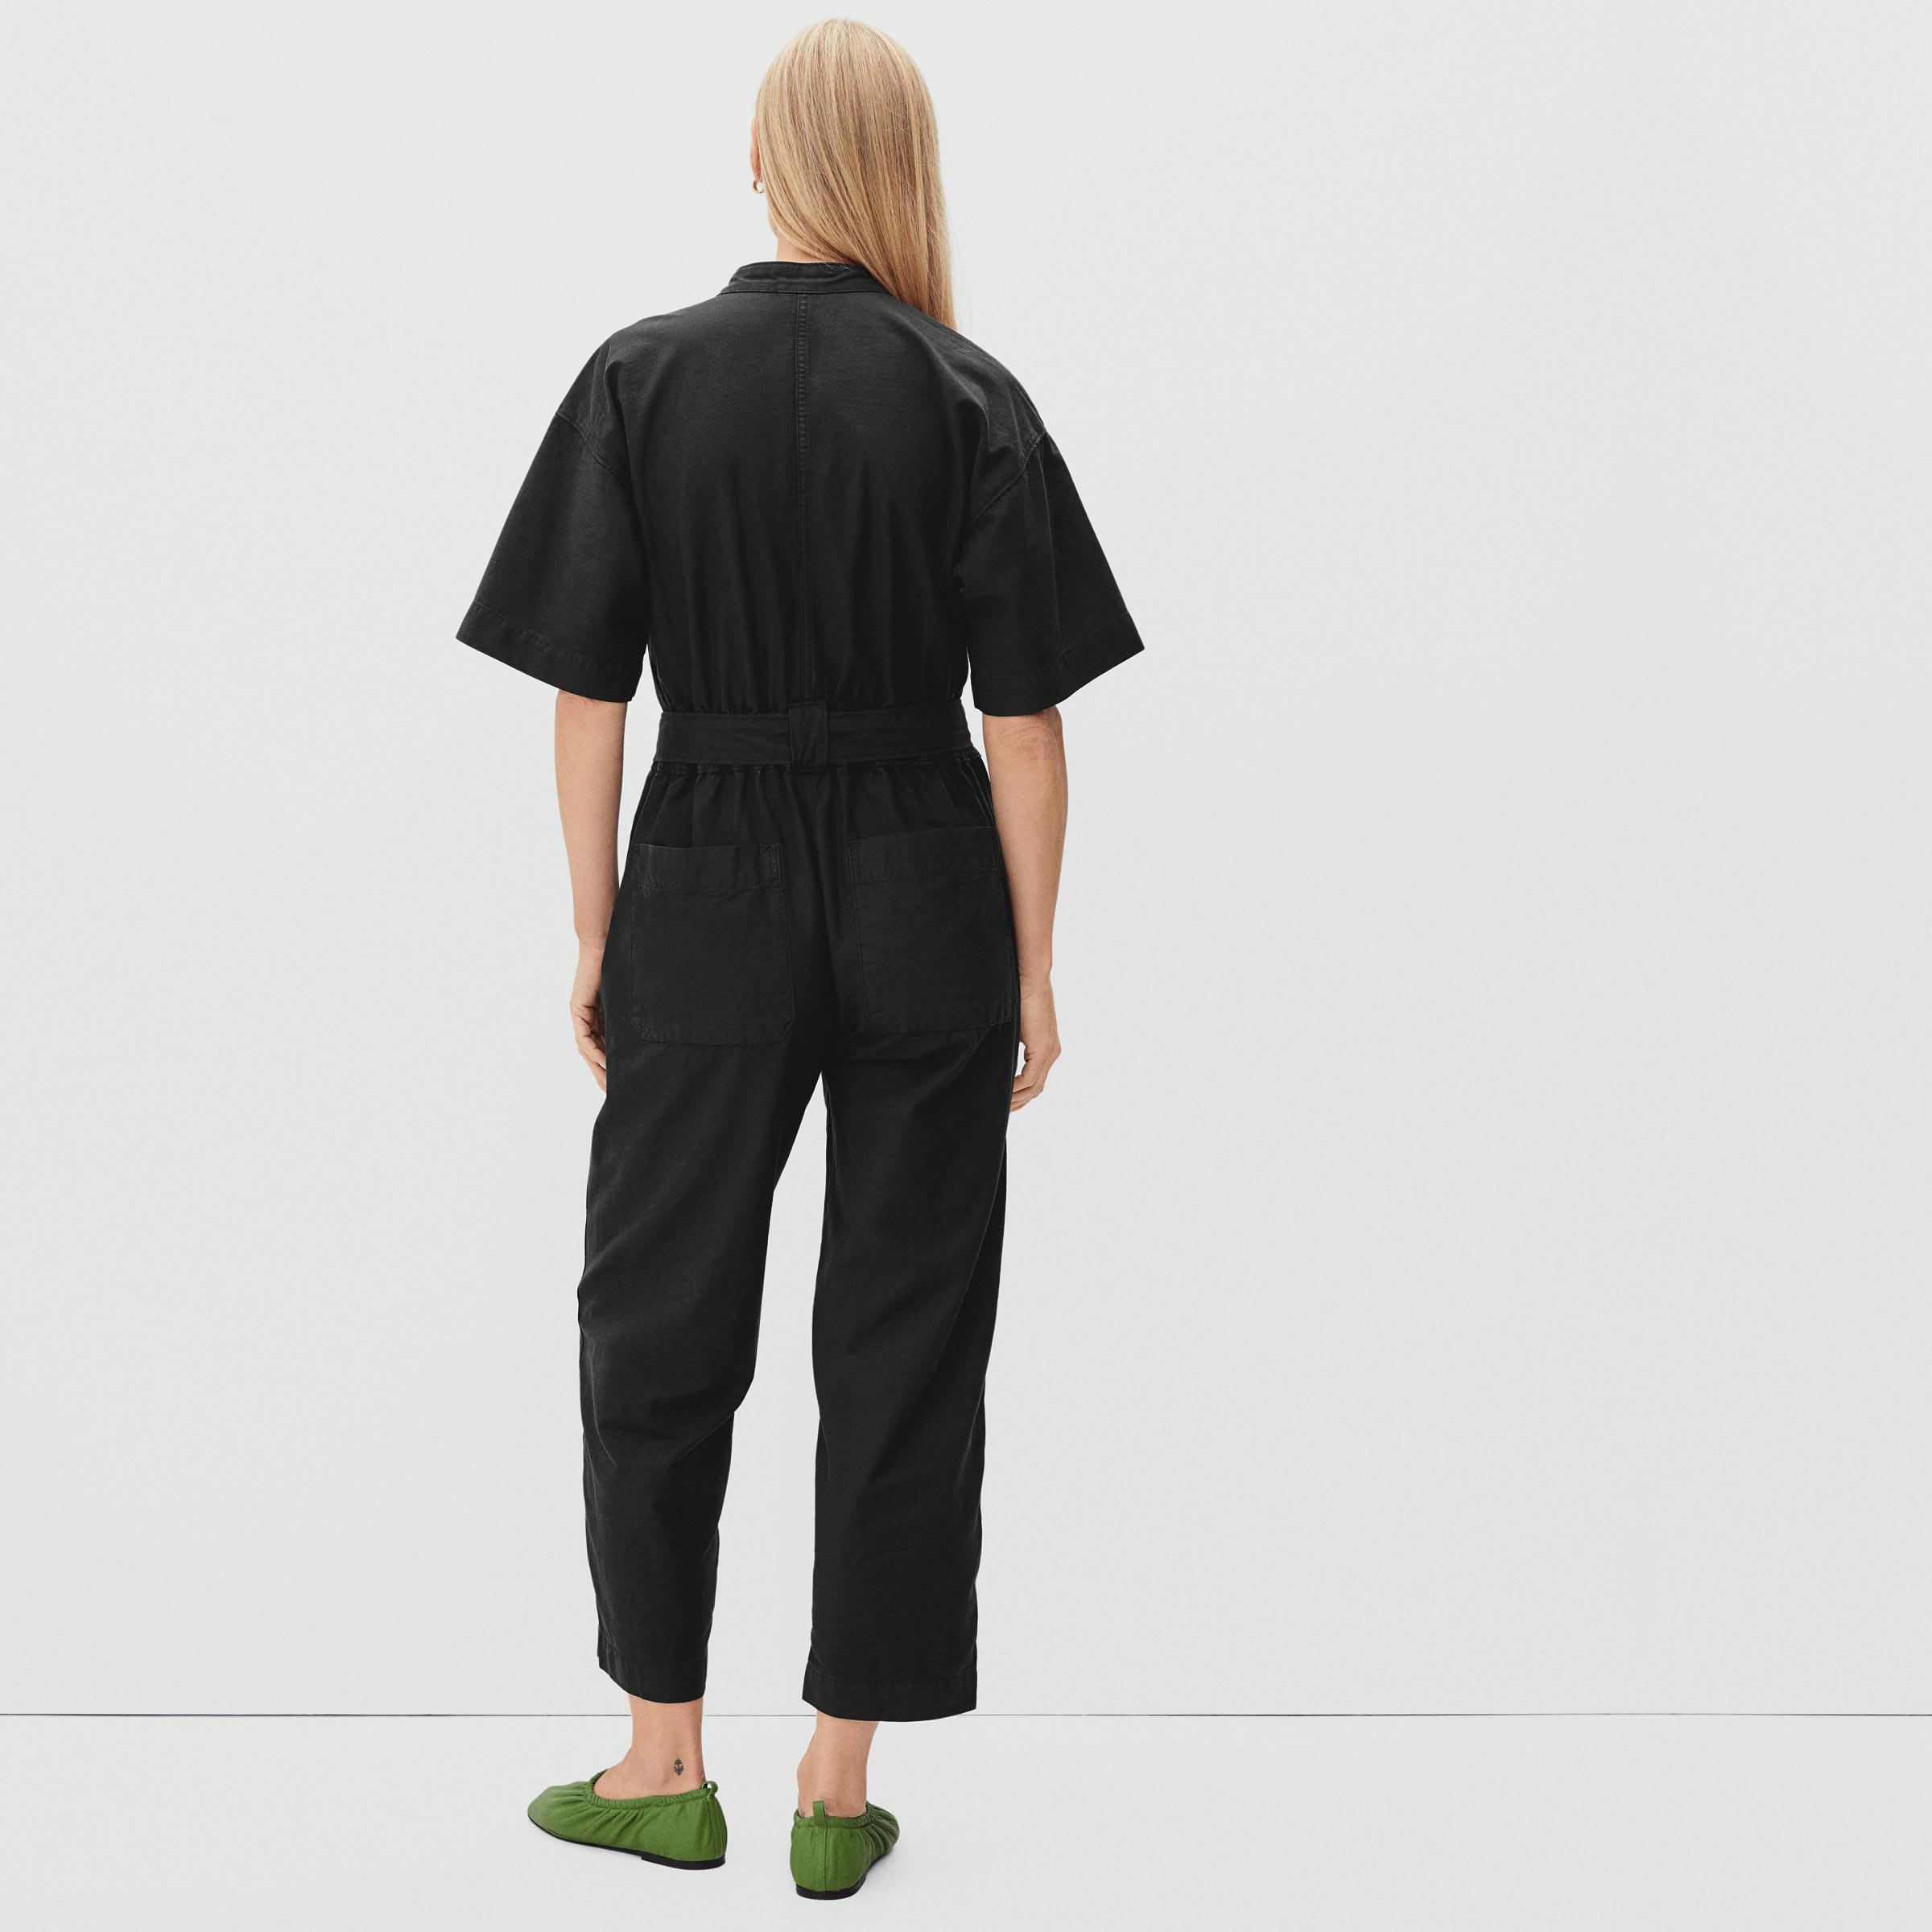 The Fatigue Short-Sleeve Jumpsuit 2